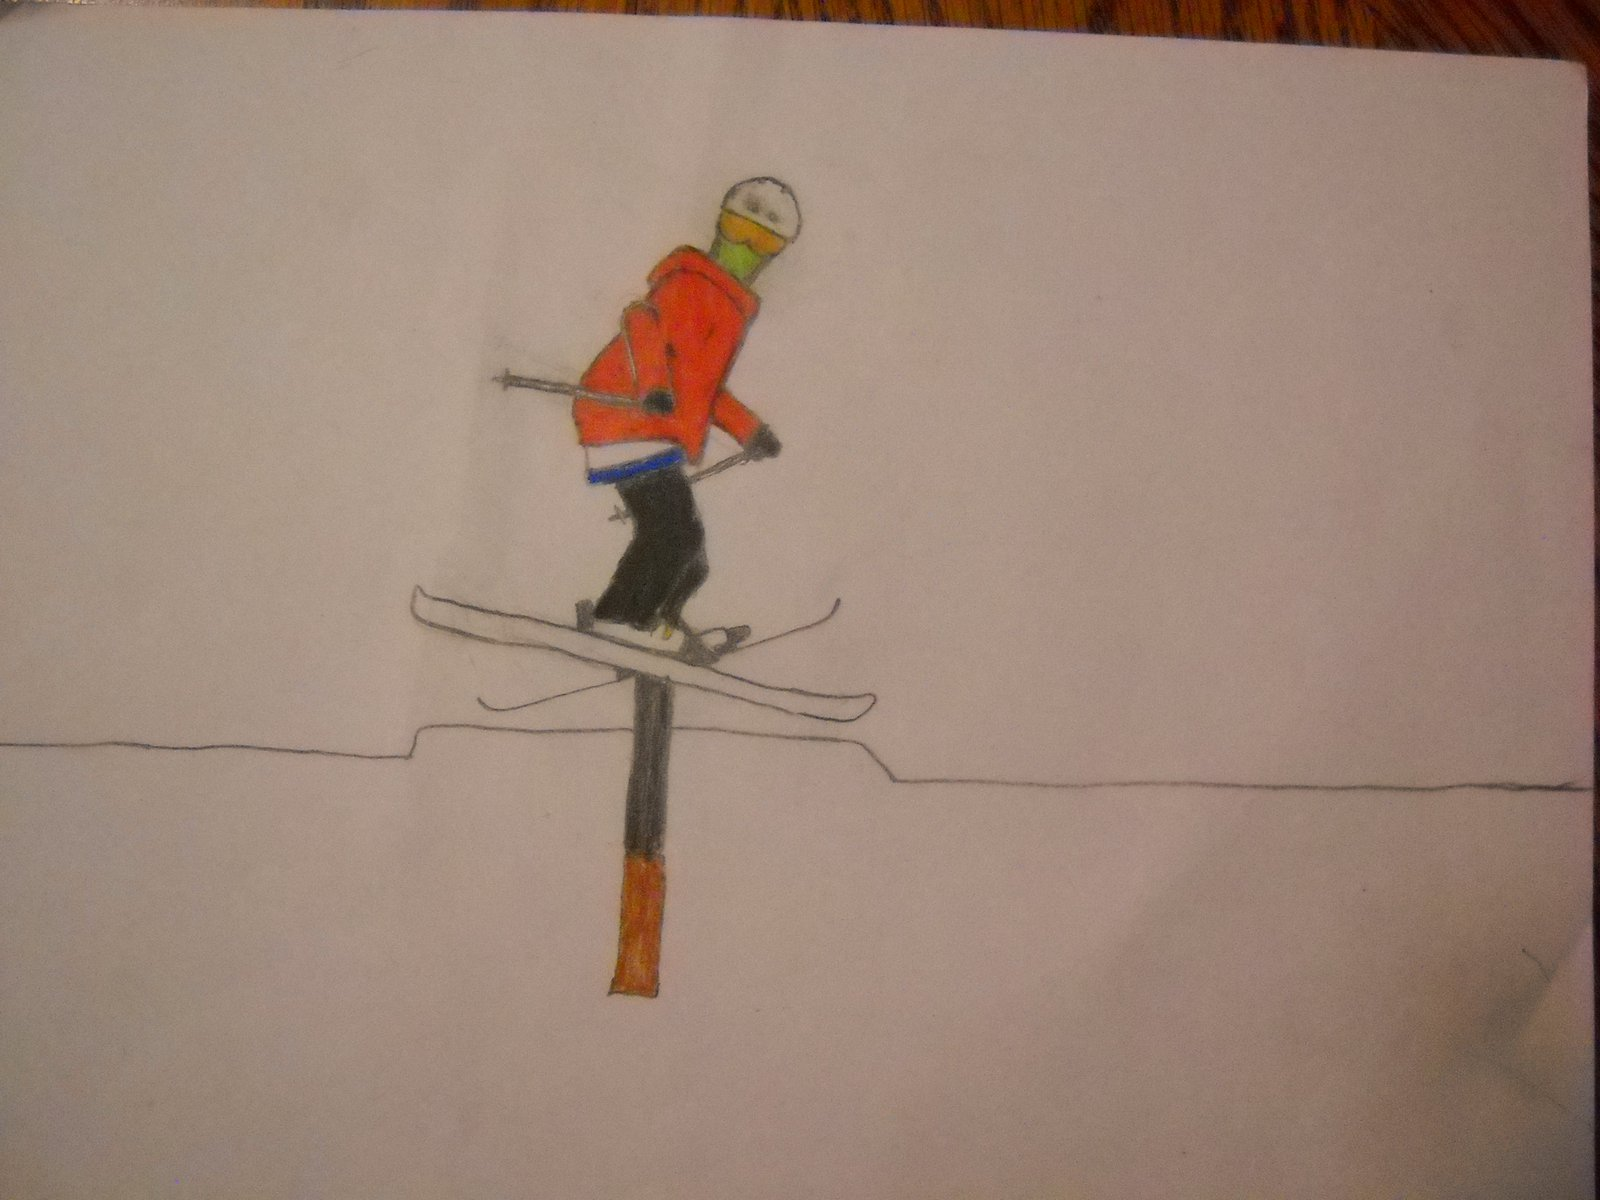 Ski drawing down rail